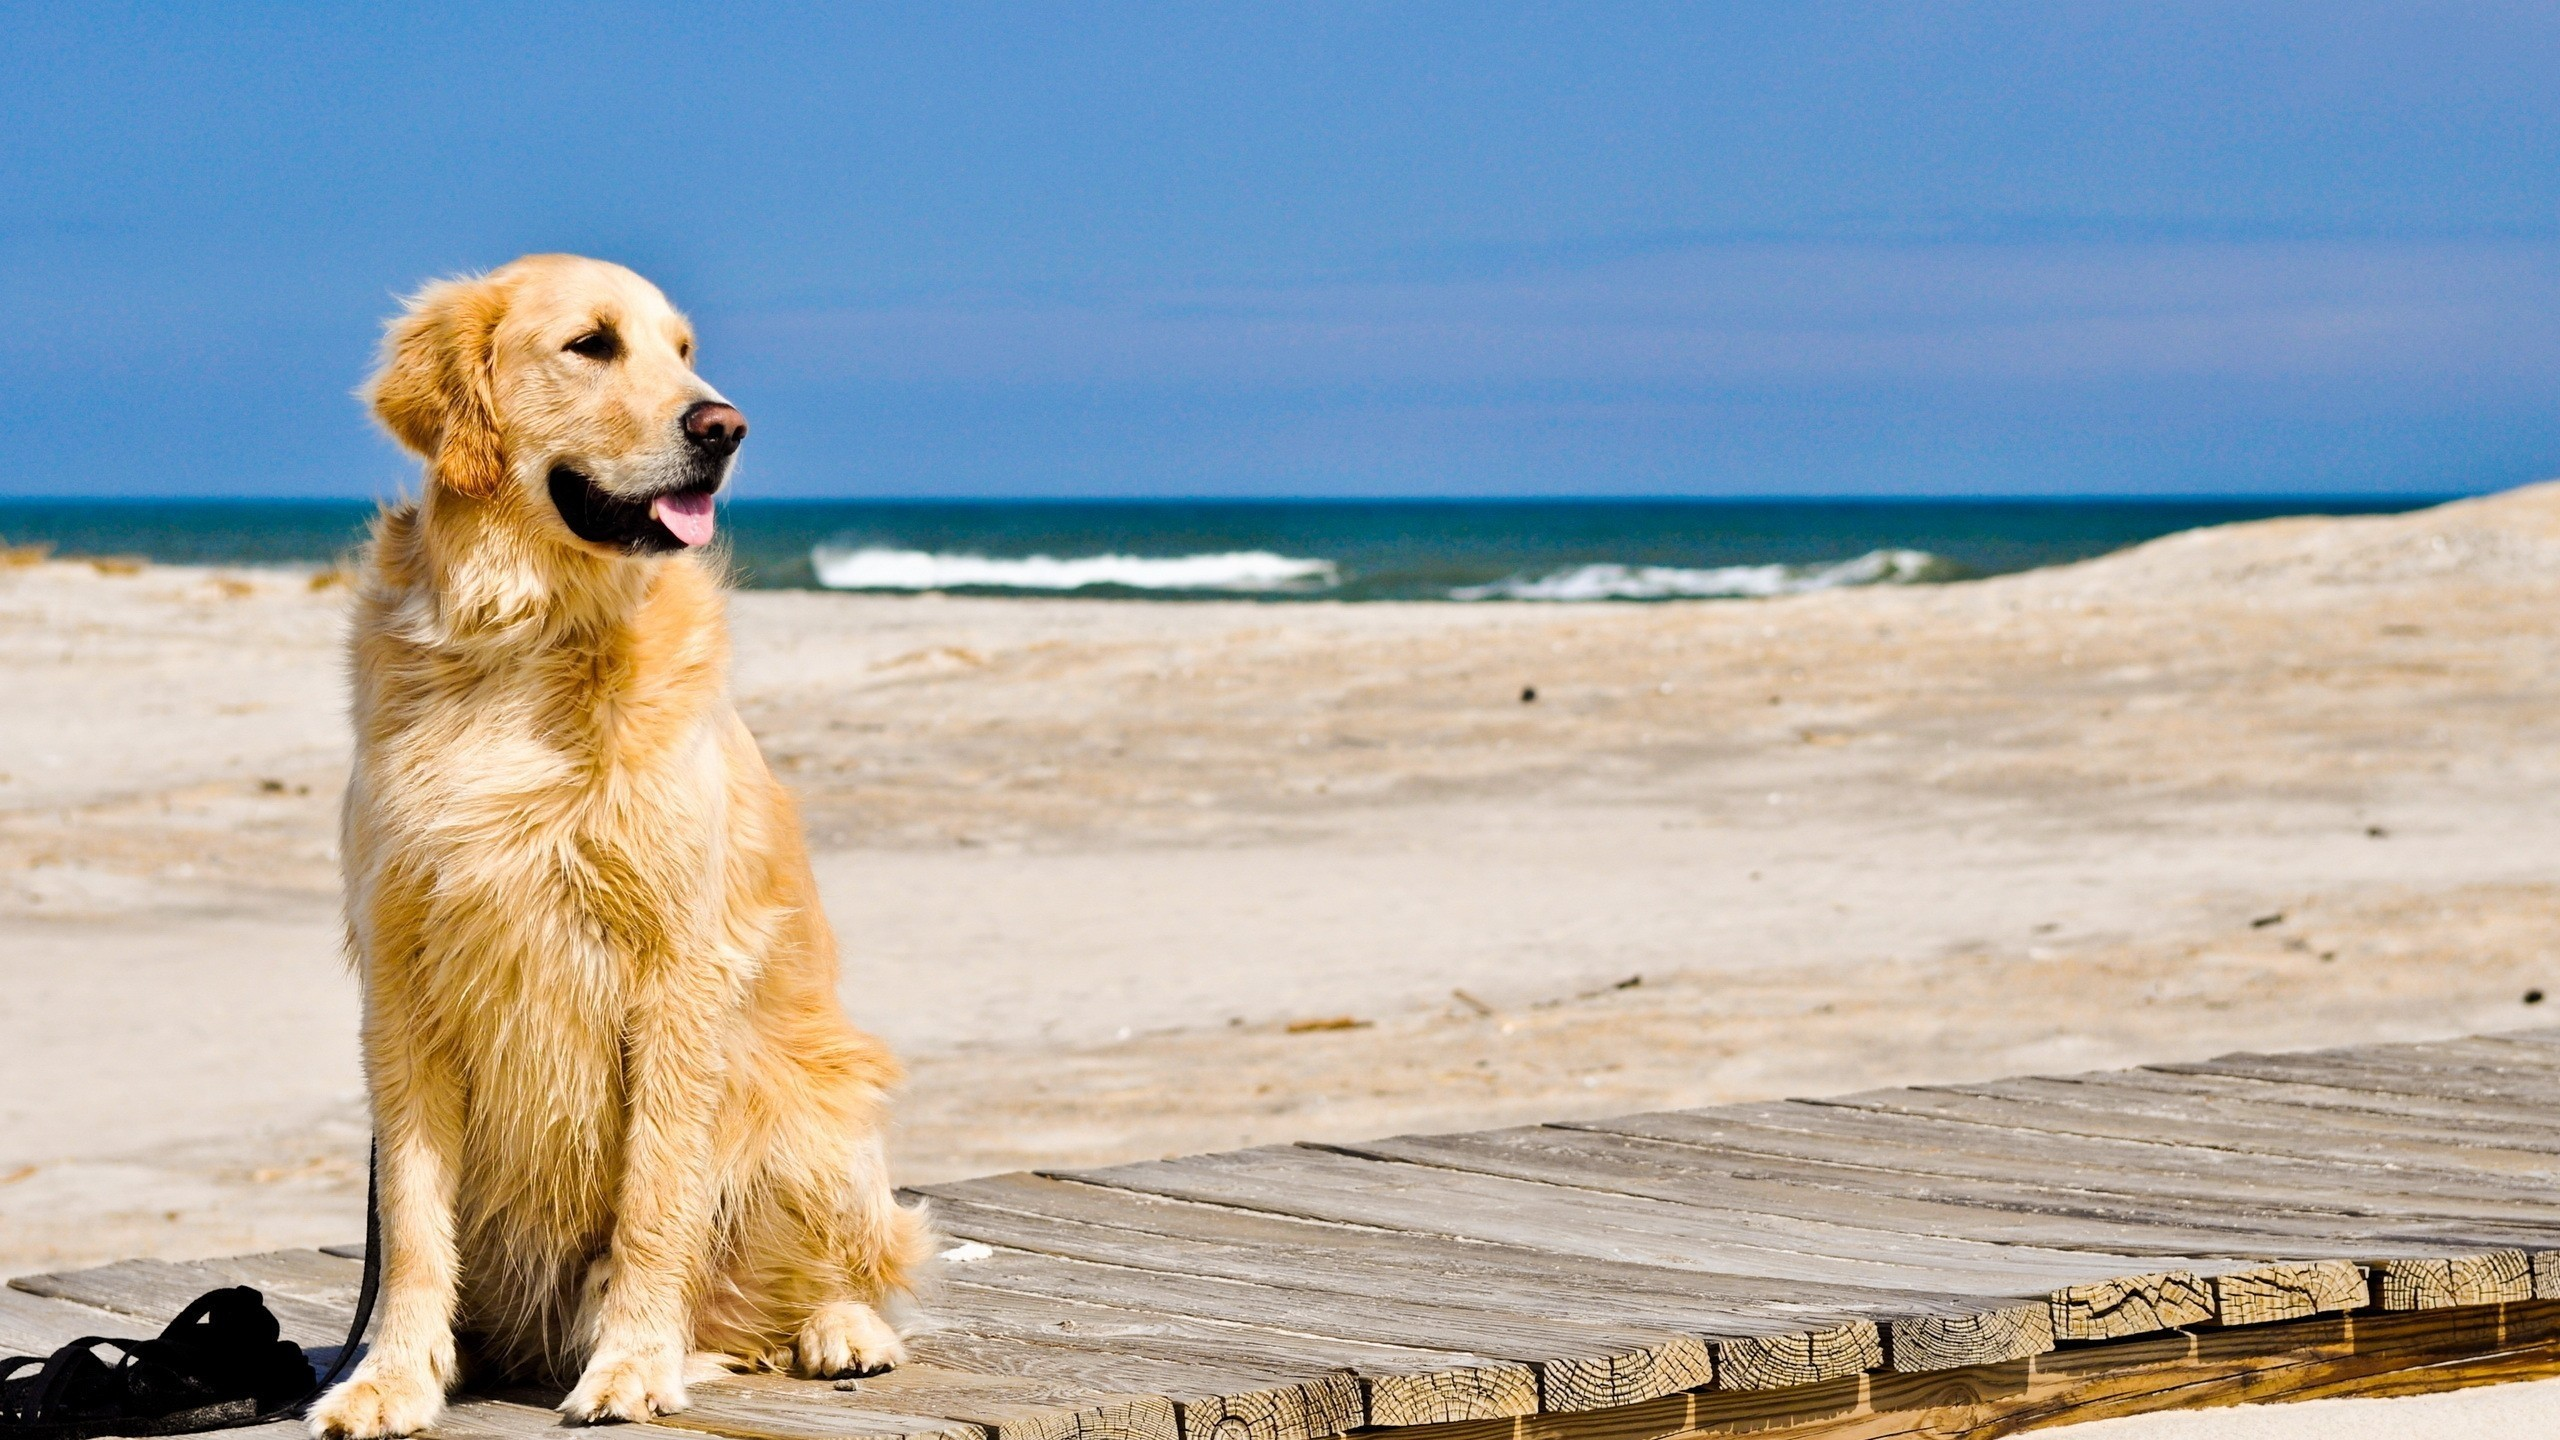 331 Golden Retriever Hd Wallpapers Background Images Wallpaper Abyss